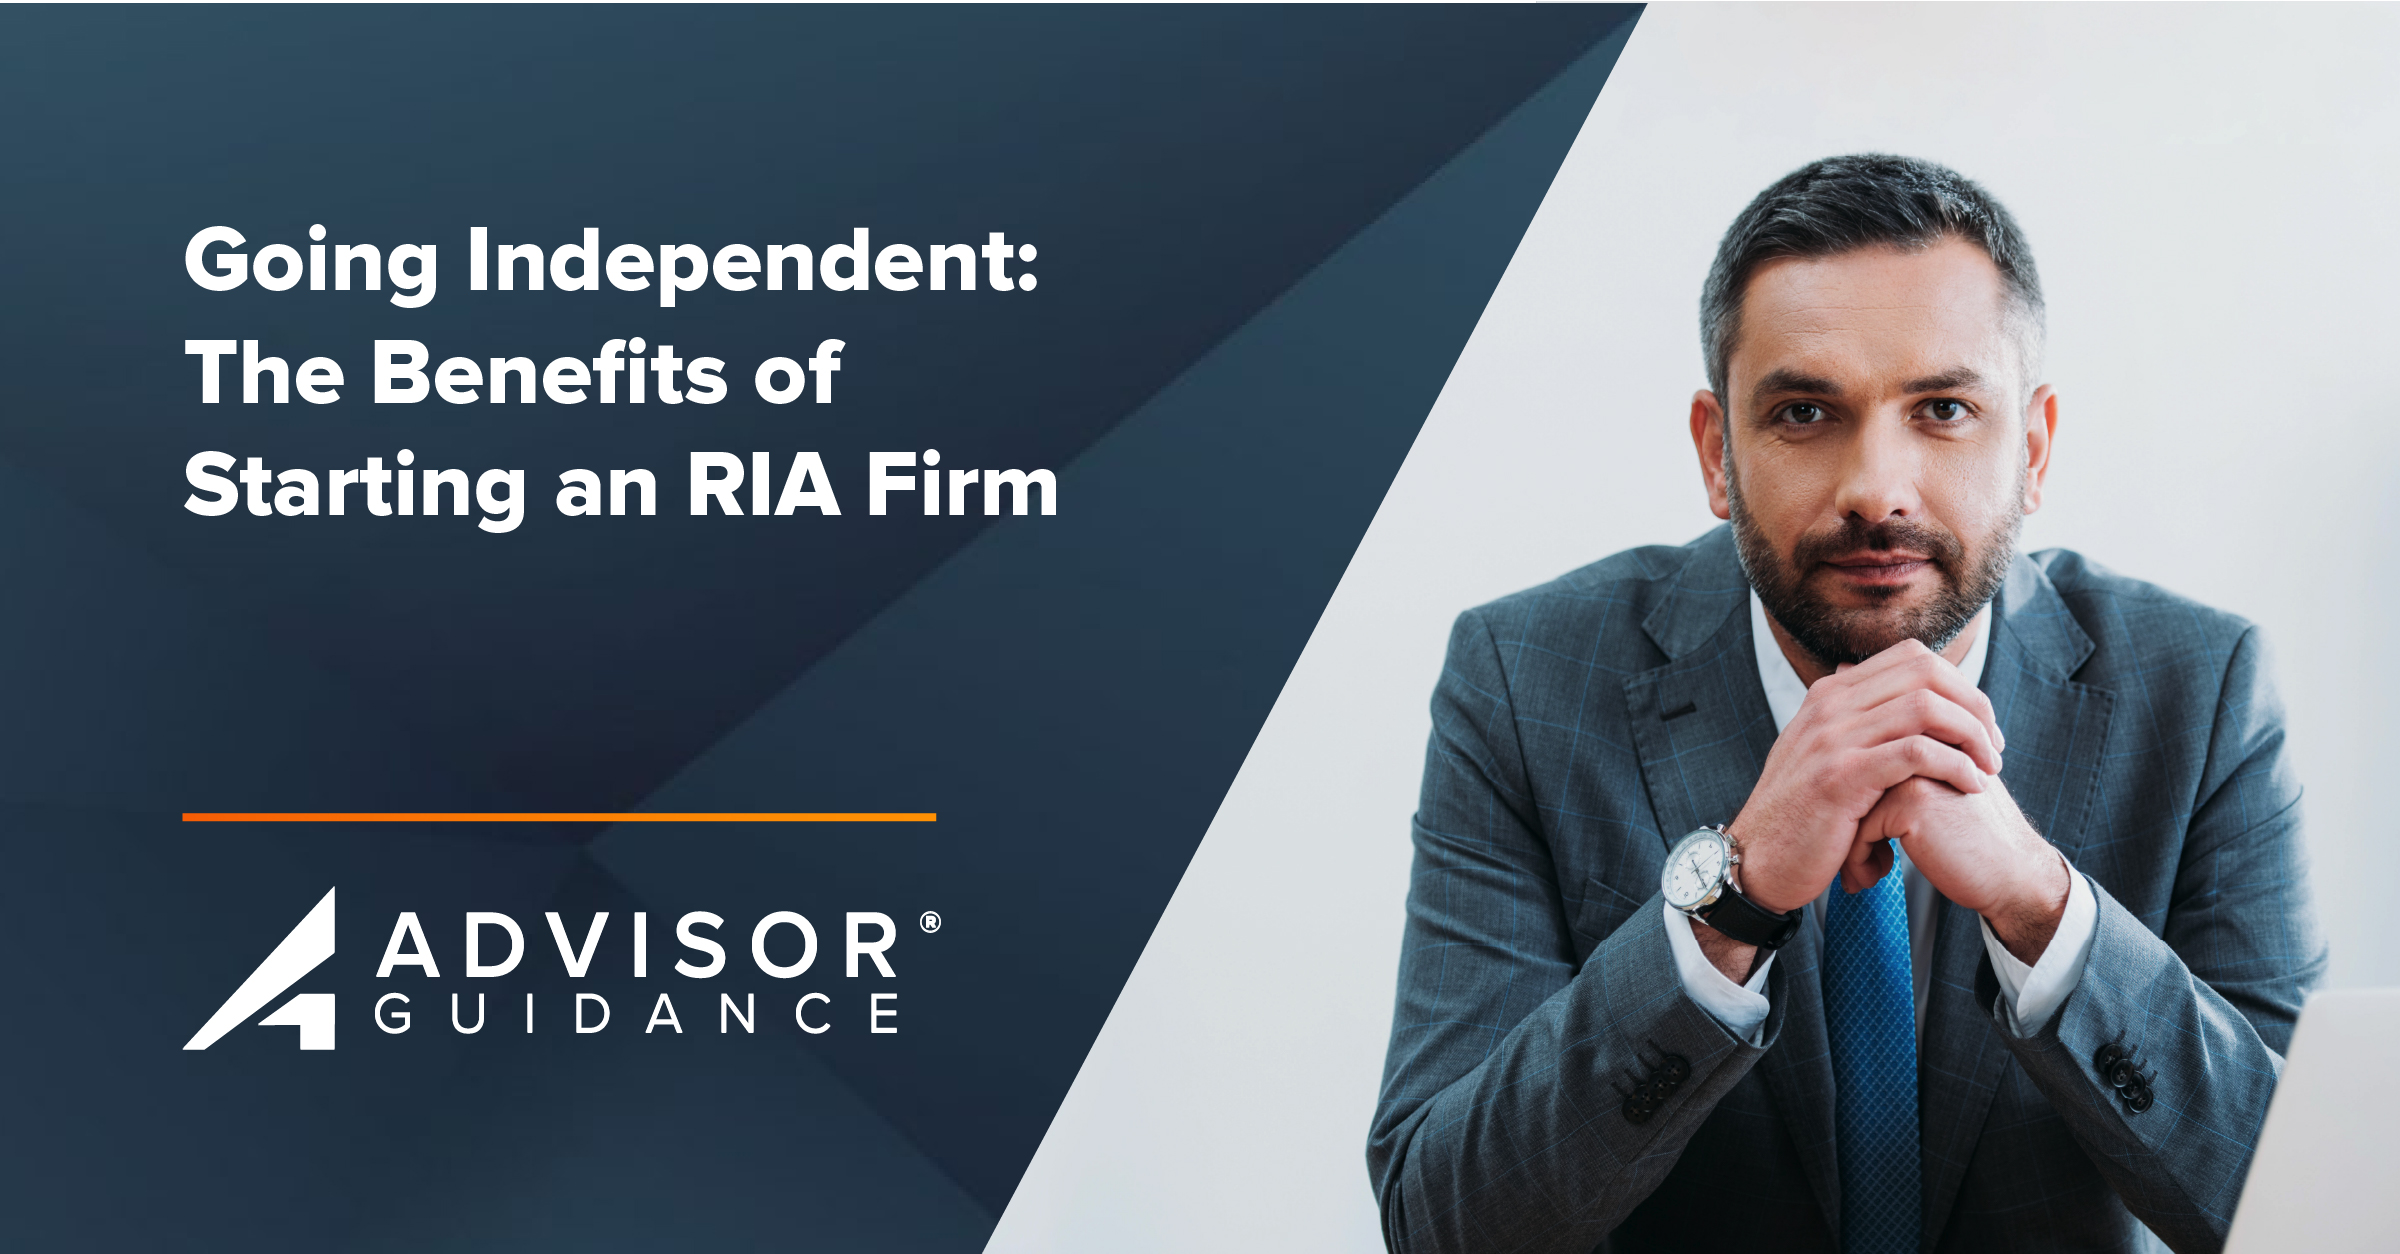 Starting an RIA Firm